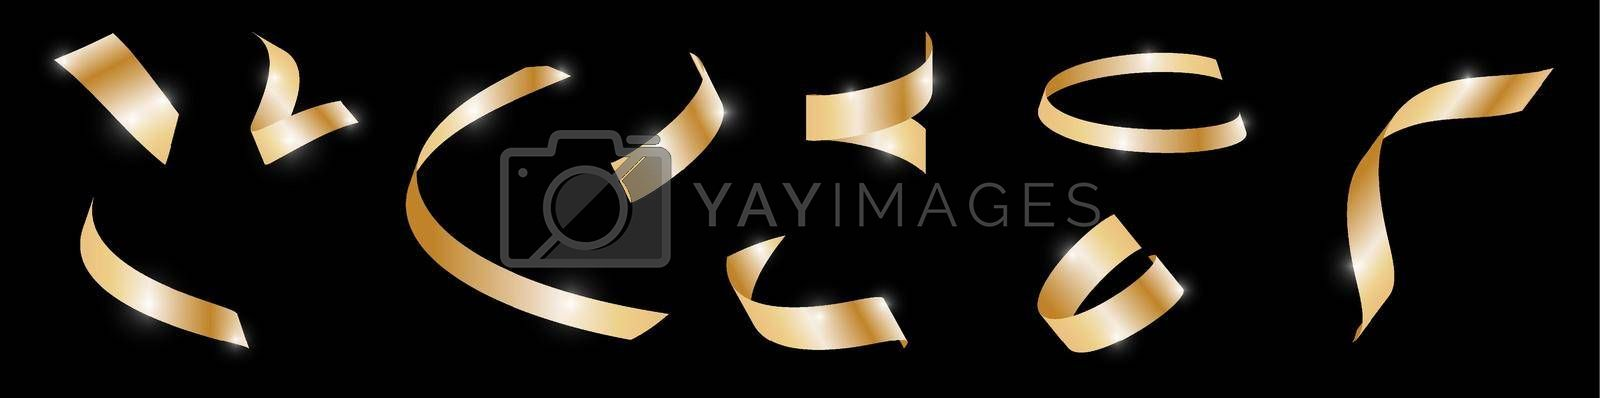 set of gold confetti on dark background, festive tinsel of different spiral shapes. New Year and Christmas holidays. Decoration of backgrounds and banners for any dark background. Vector